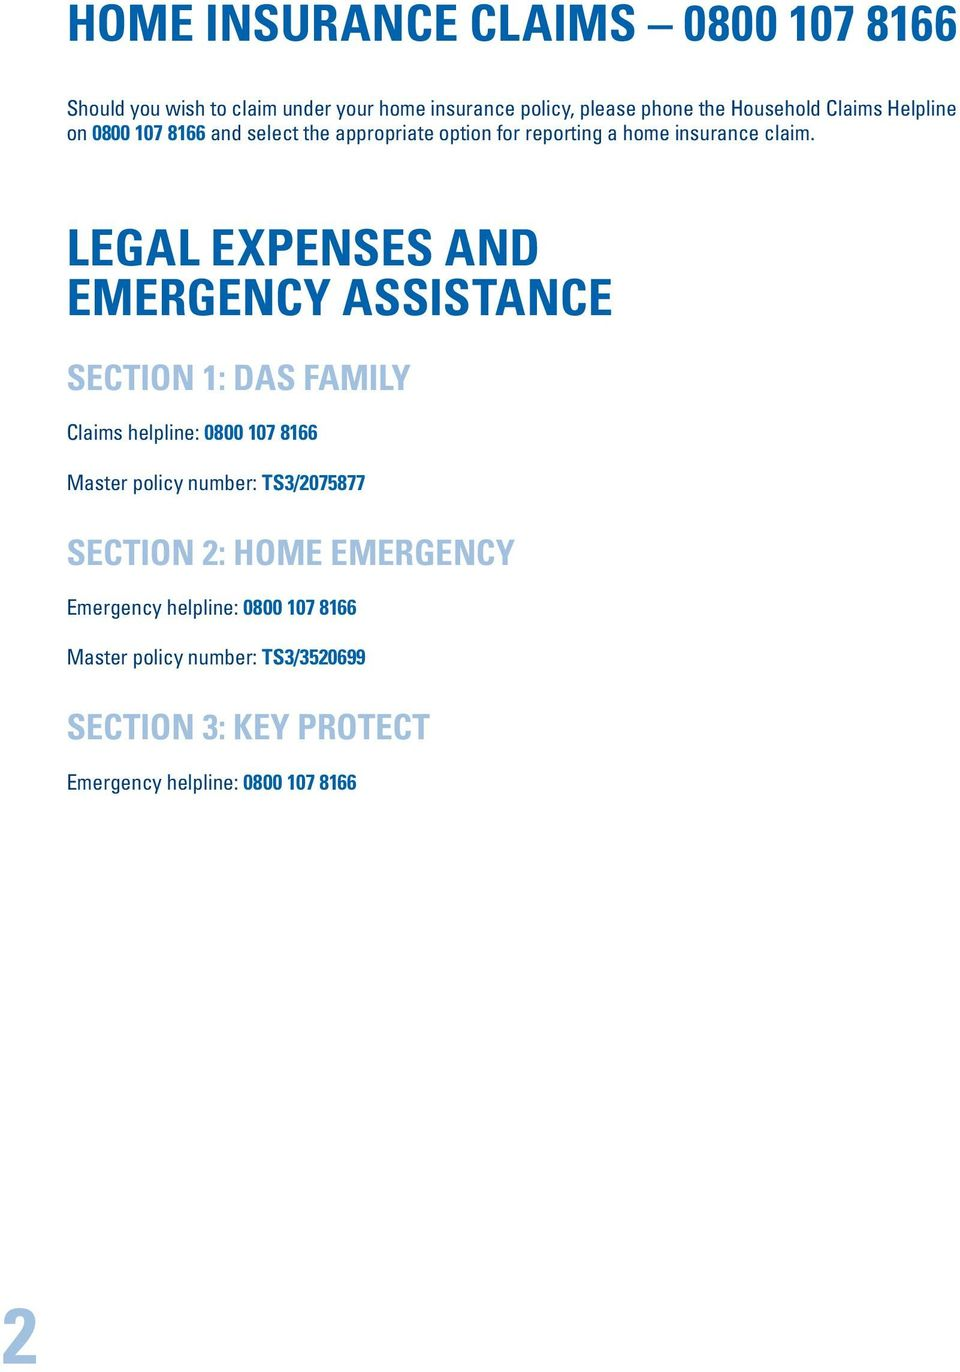 Legal expenses and emergency assistance Section 1: DAS family Claims helpline: 0800 107 8166 Master policy number: TS3/2075877